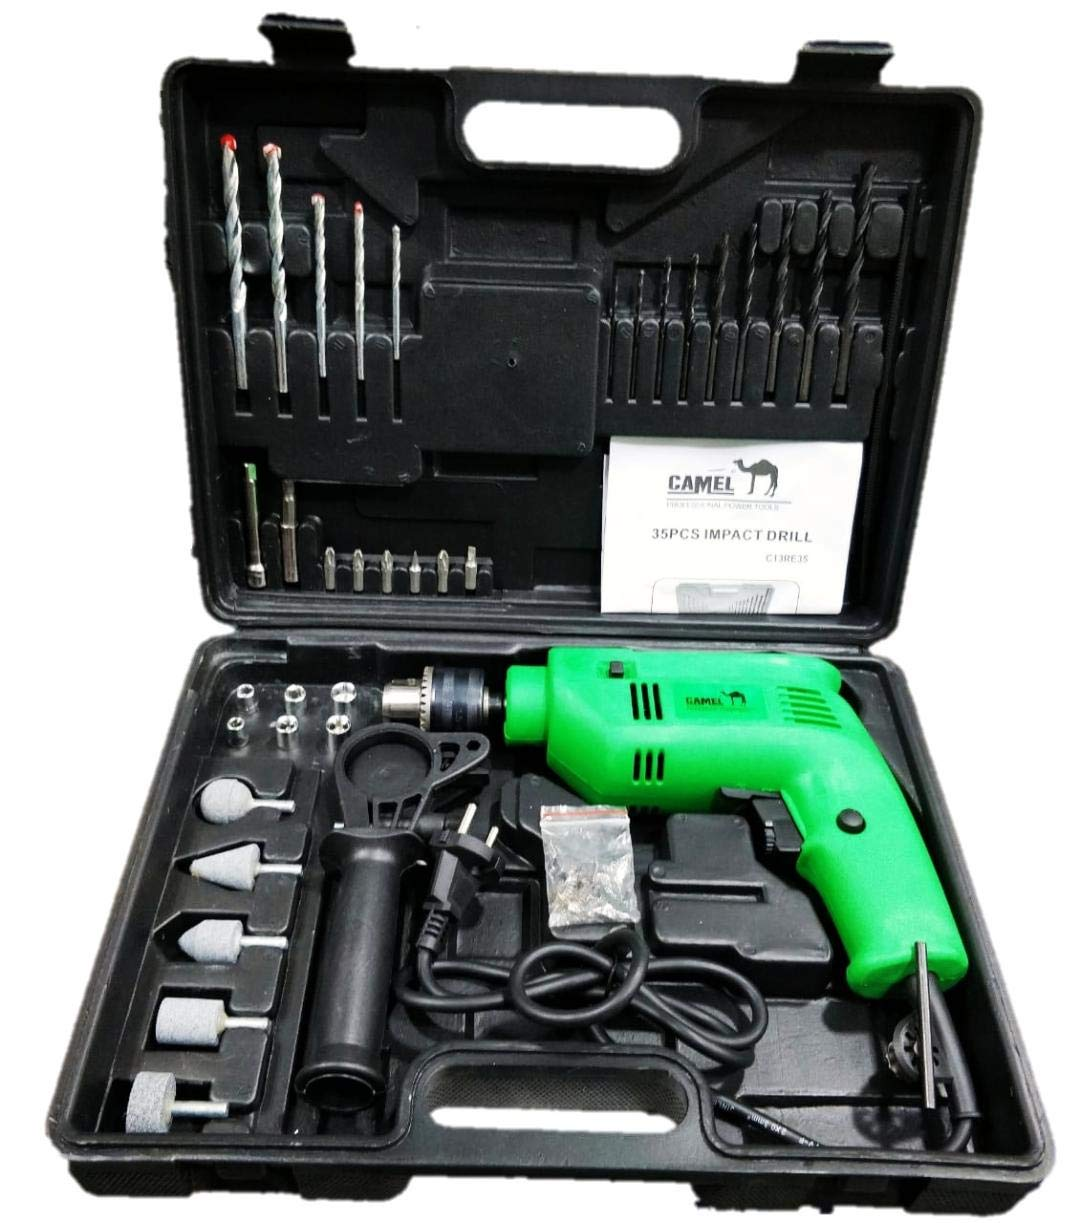 a7e5b06e2bc Camel 13mm 500W Impact Drill Machine With Reversible Function 35pcs  Accessories  Amazon.in  Amazon.in